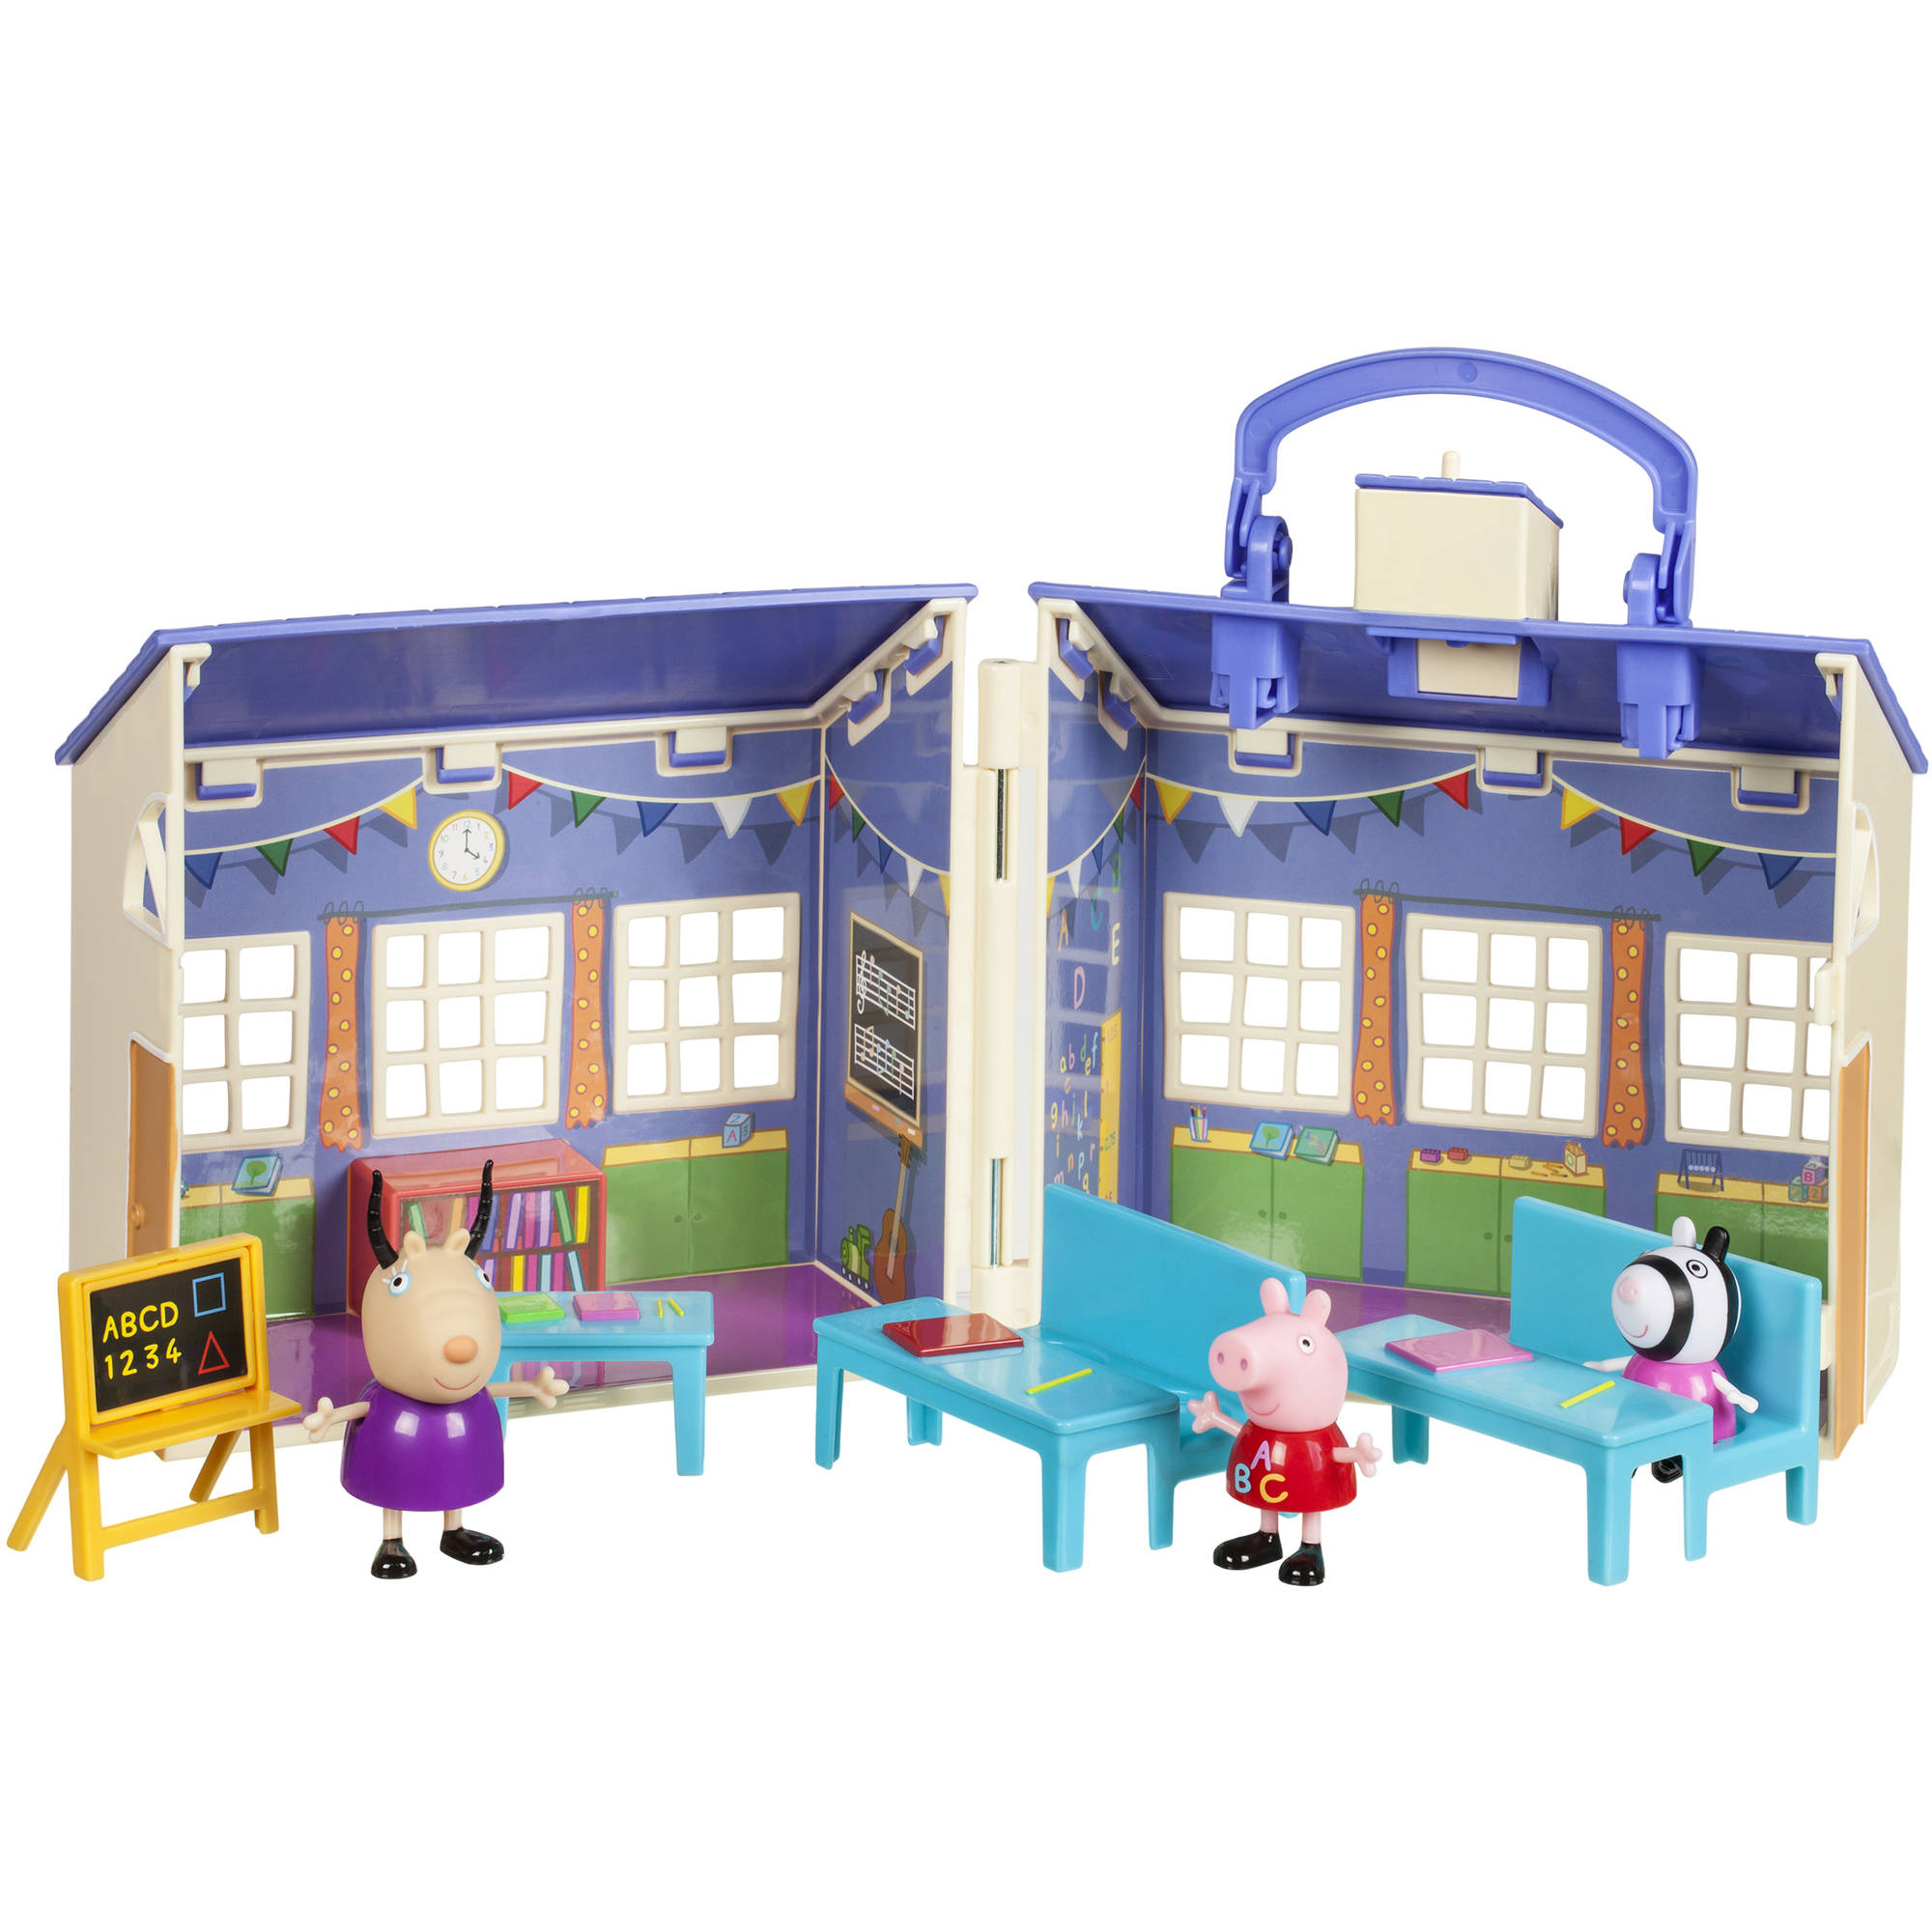 Toys For School : Peppa pig peppas school playset schoolhouse toy madame